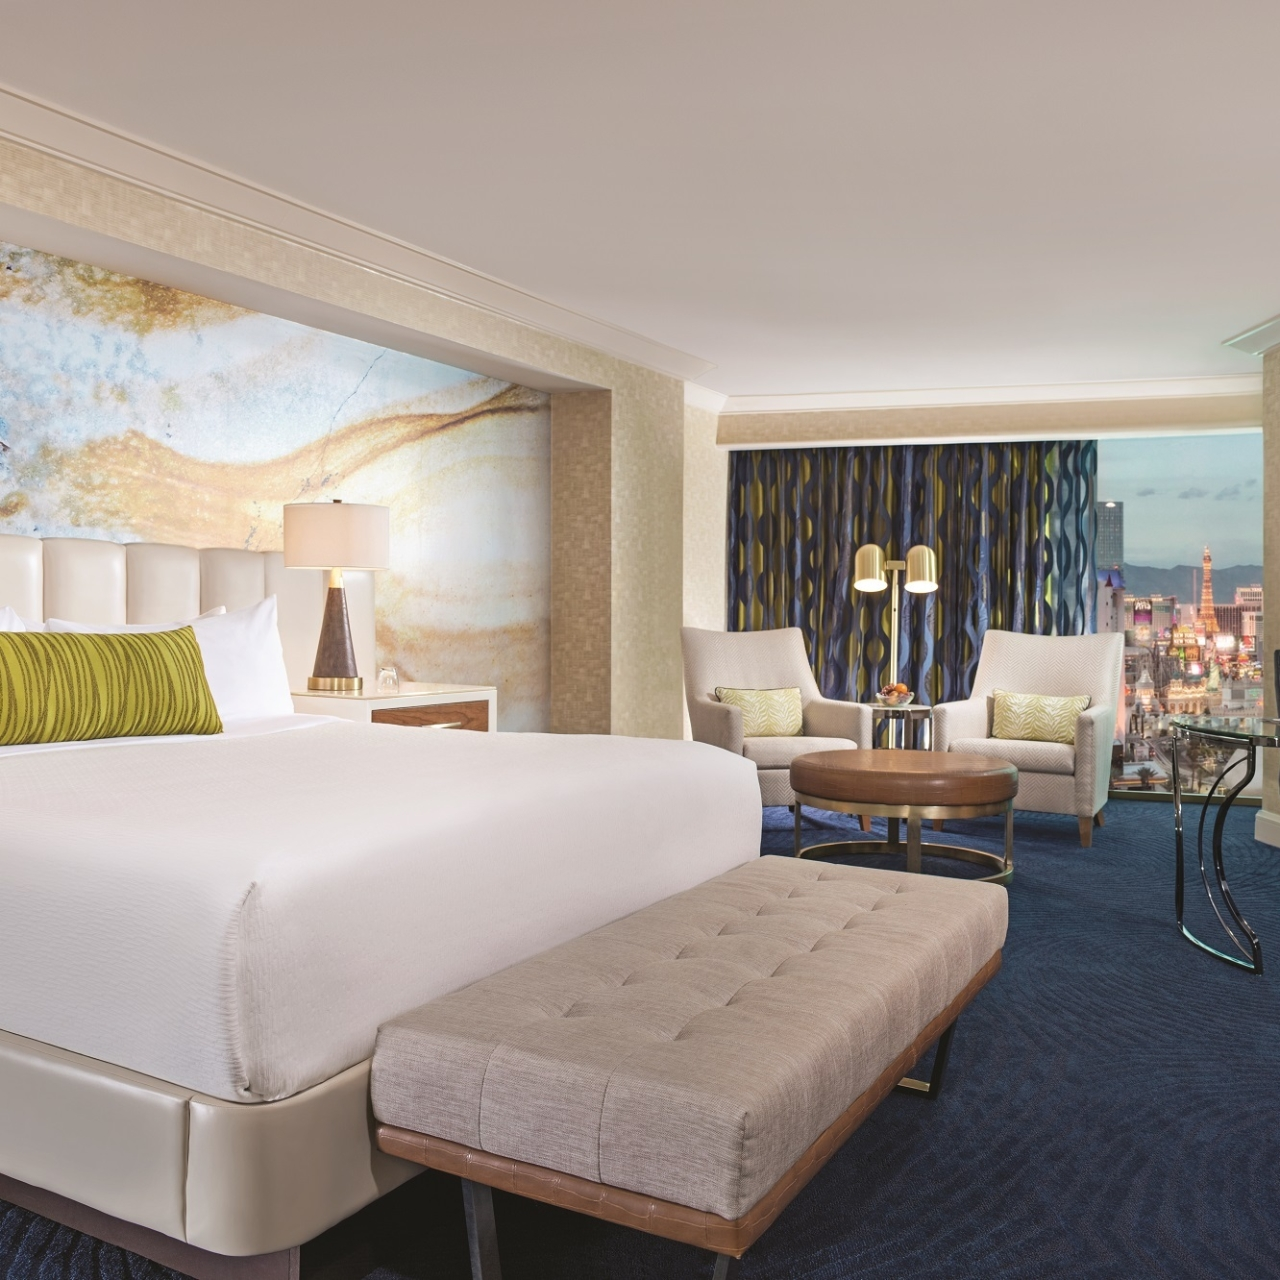 Hotel Mgm Mandalay Bay Resort Casino United States Of America At Hrs With Free Services